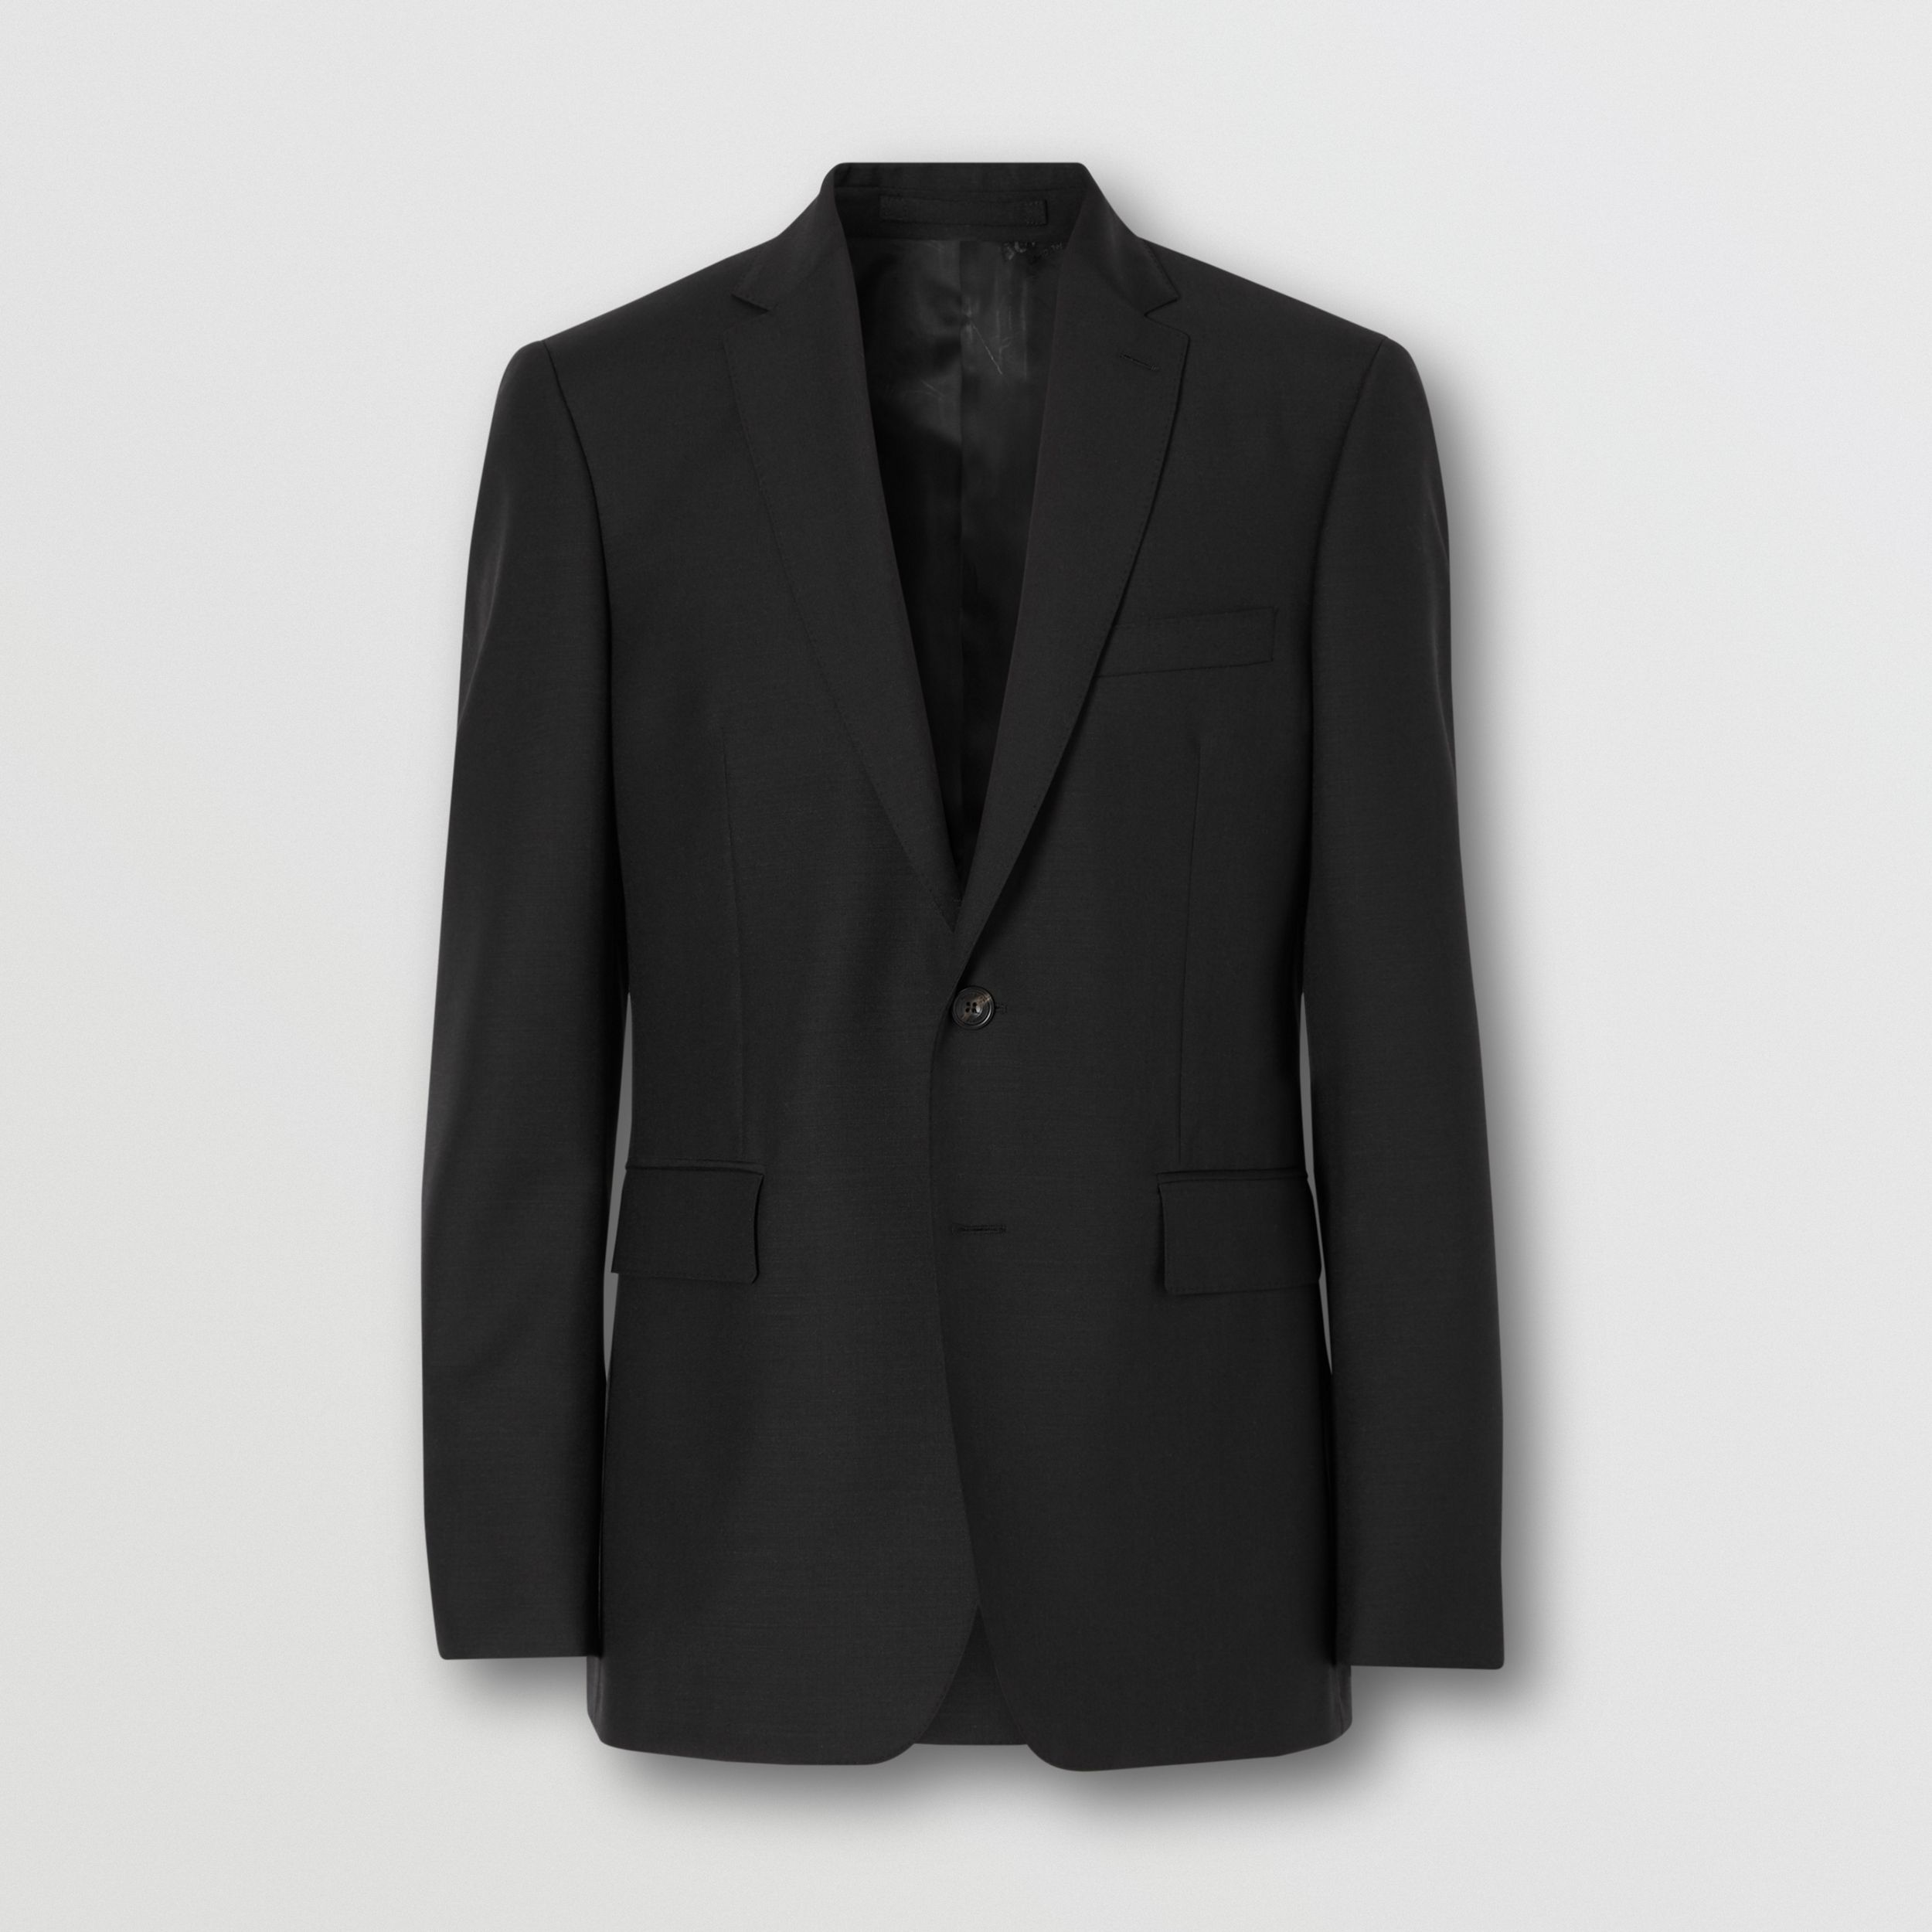 Slim Fit Wool Mohair Suit in Black - Men | Burberry United States - 4